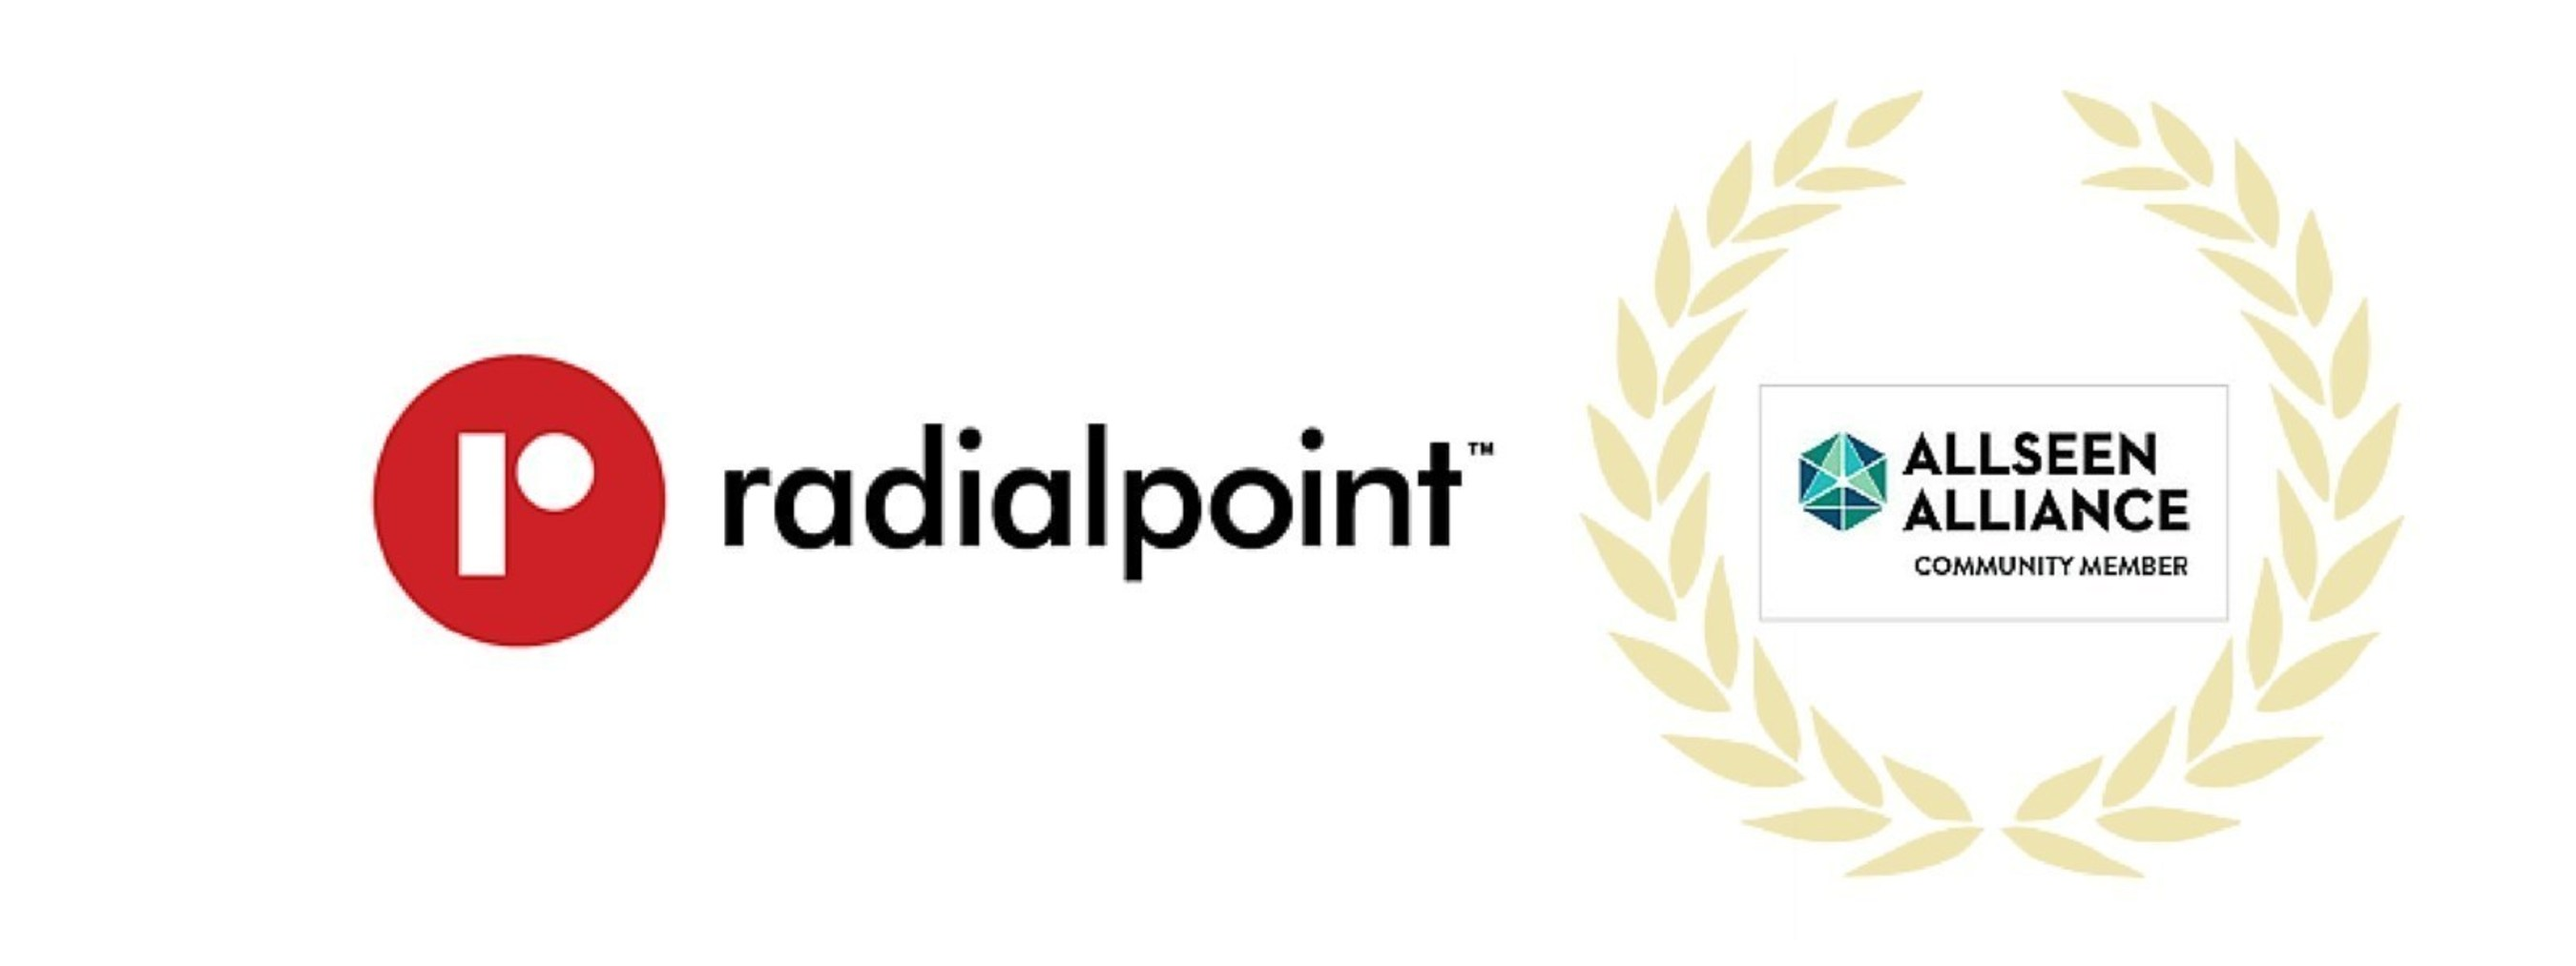 Radialpoint Joins the AllSeen Alliance to Advance IoT End-User Support